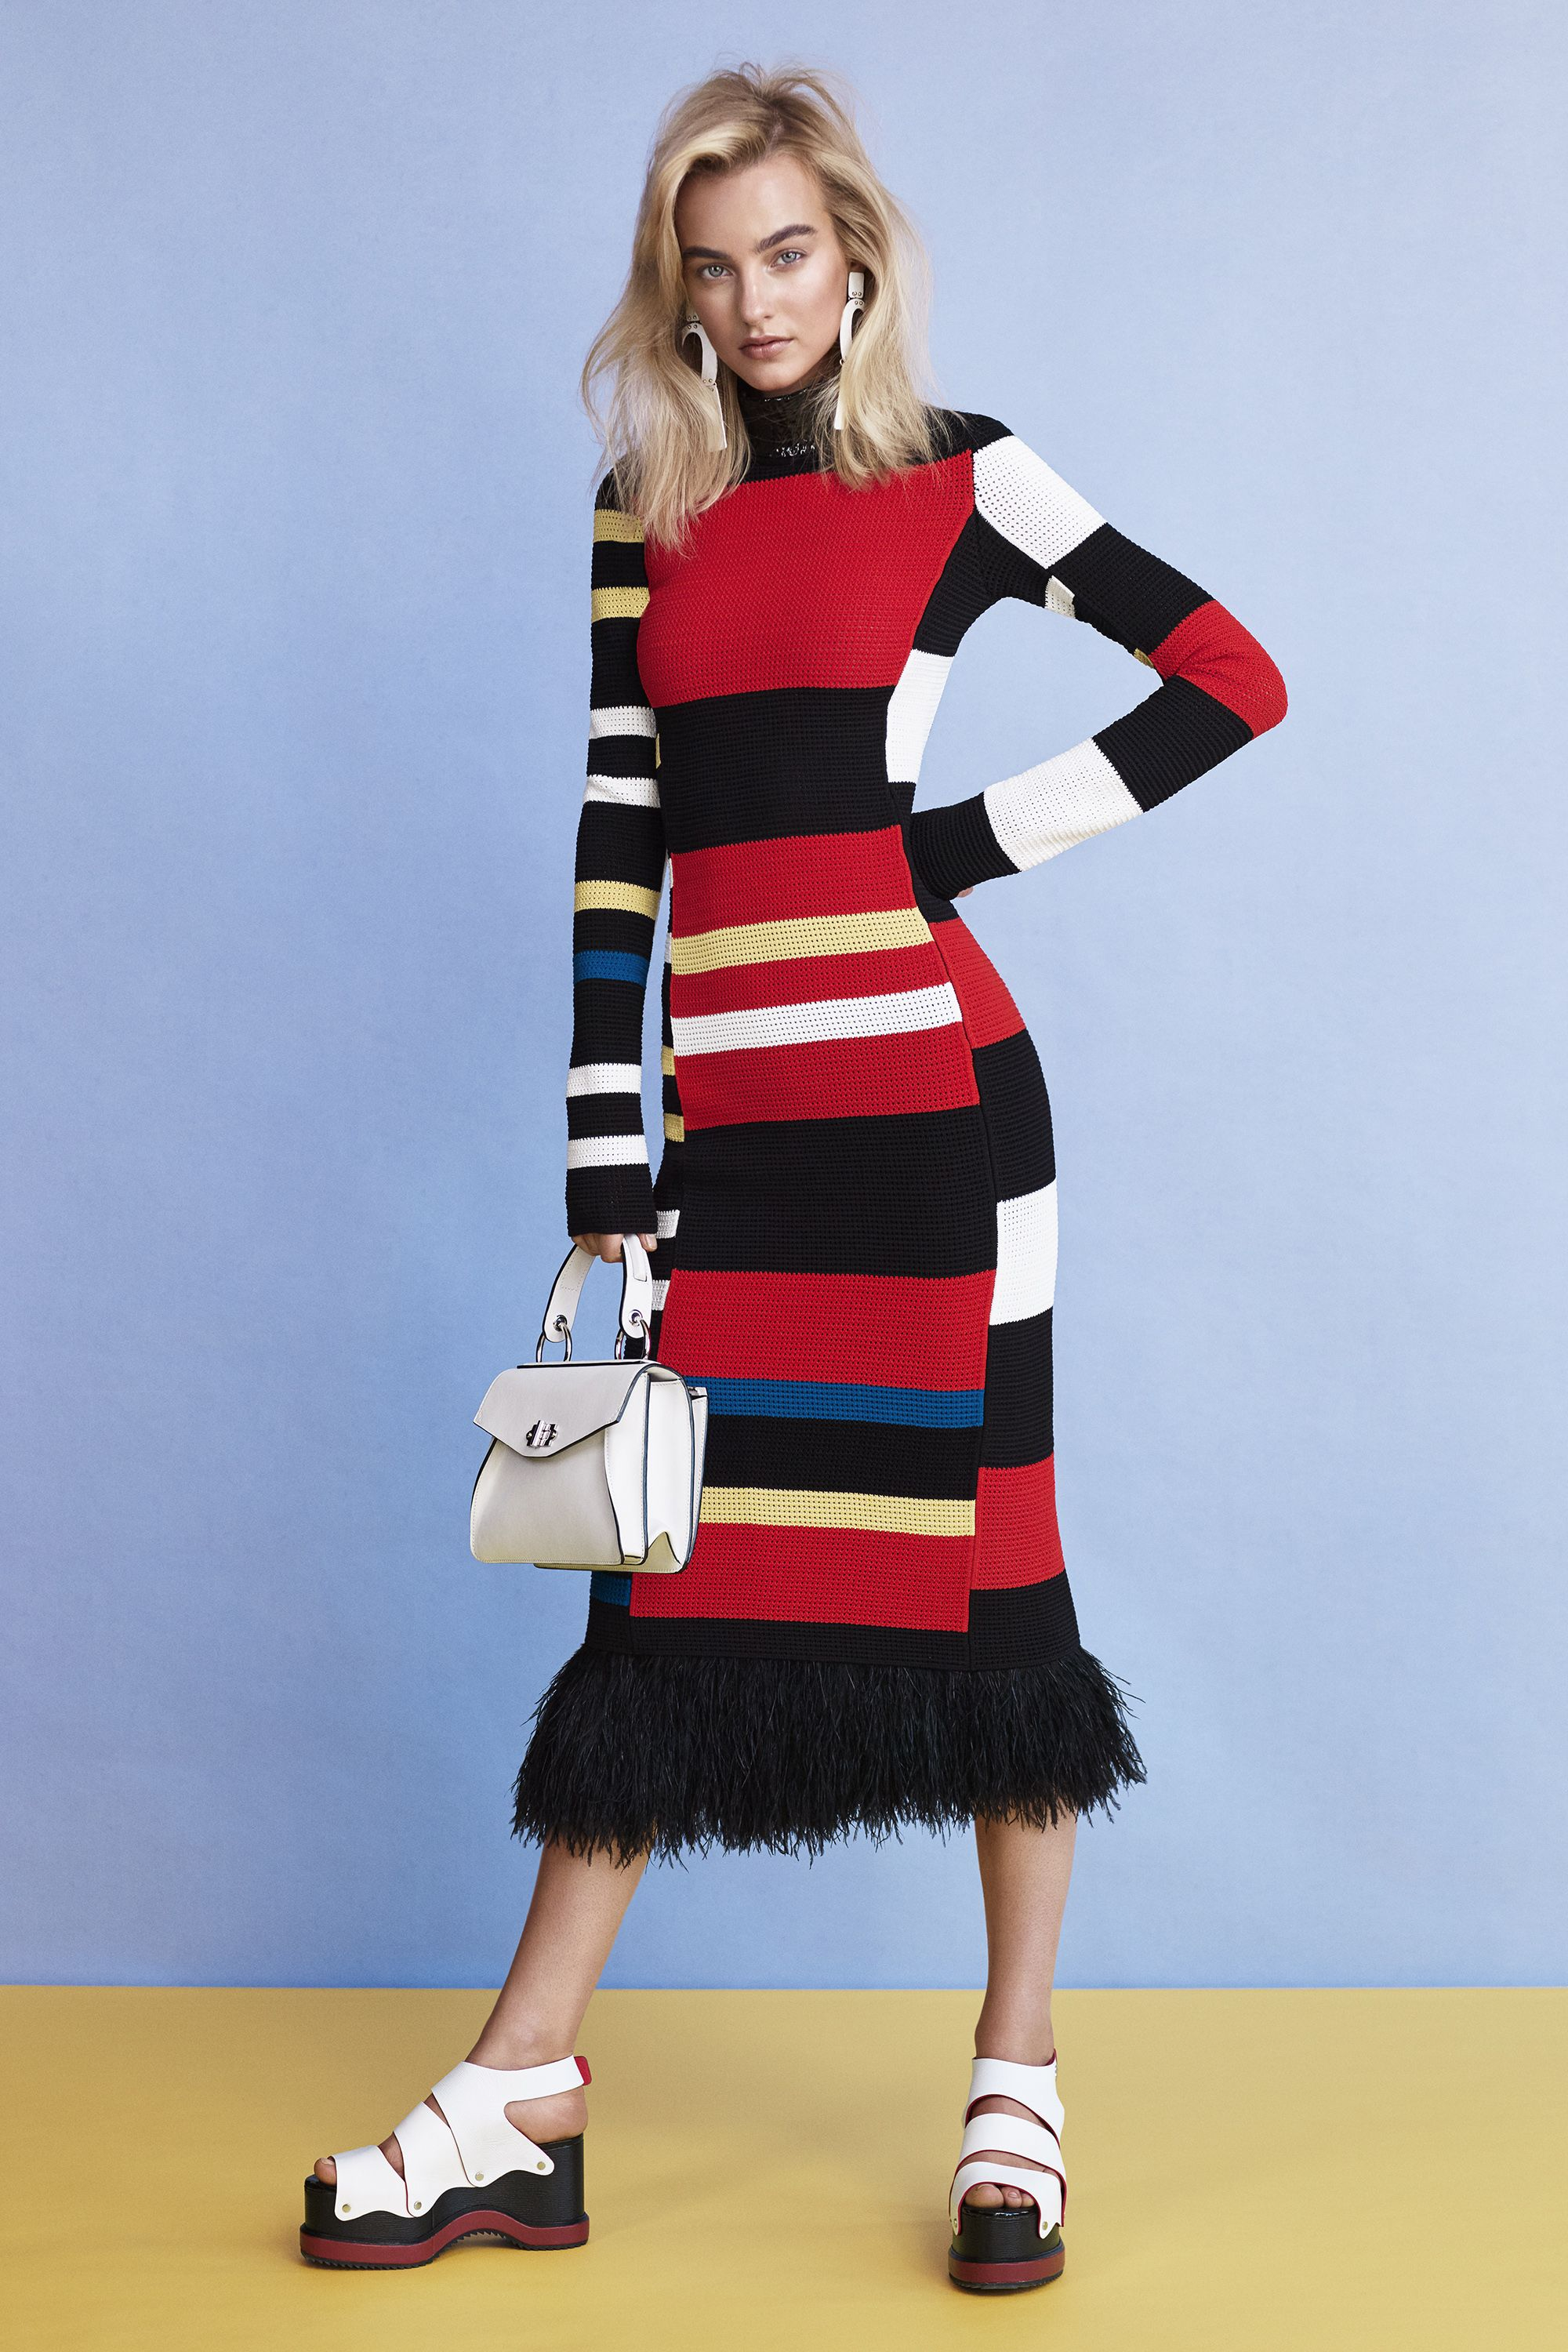 "<p><strong data-redactor-tag=""strong"" data-verified=""redactor"">Proenza Schouler </strong>dress, $4,250, earrings, $695, bag, $1,650, shoes, $1,050, and choker, price upon request 212-420-7300, <a href=""https://shop.harpersbazaar.com/designers/proenza-schouler/"" target=""_blank"" data-tracking-id=""recirc-text-link"">shopBAZAAR.com</a>.</p>"